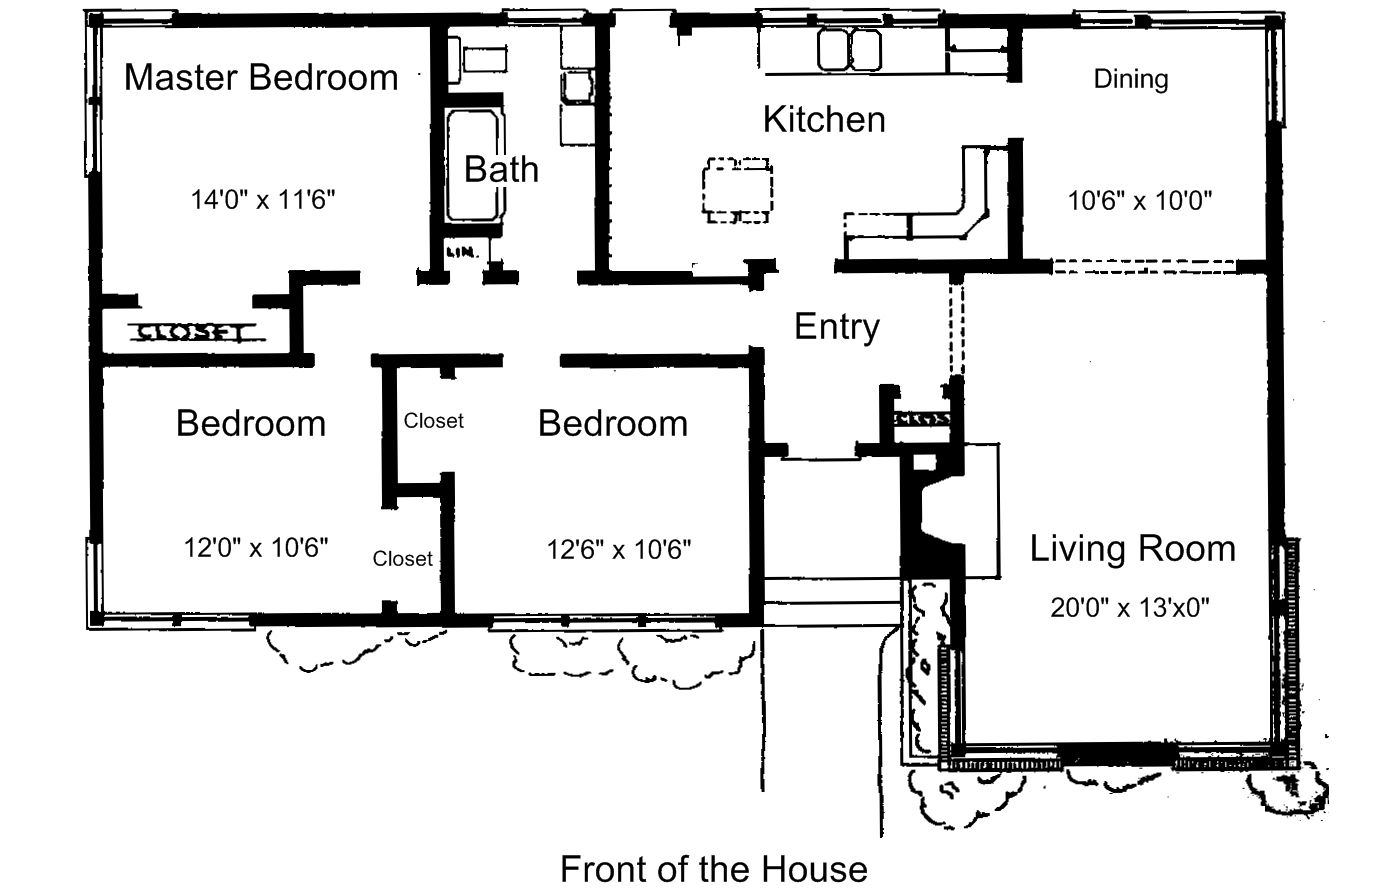 Free Small House Plans For Ideas or Just Dreaming